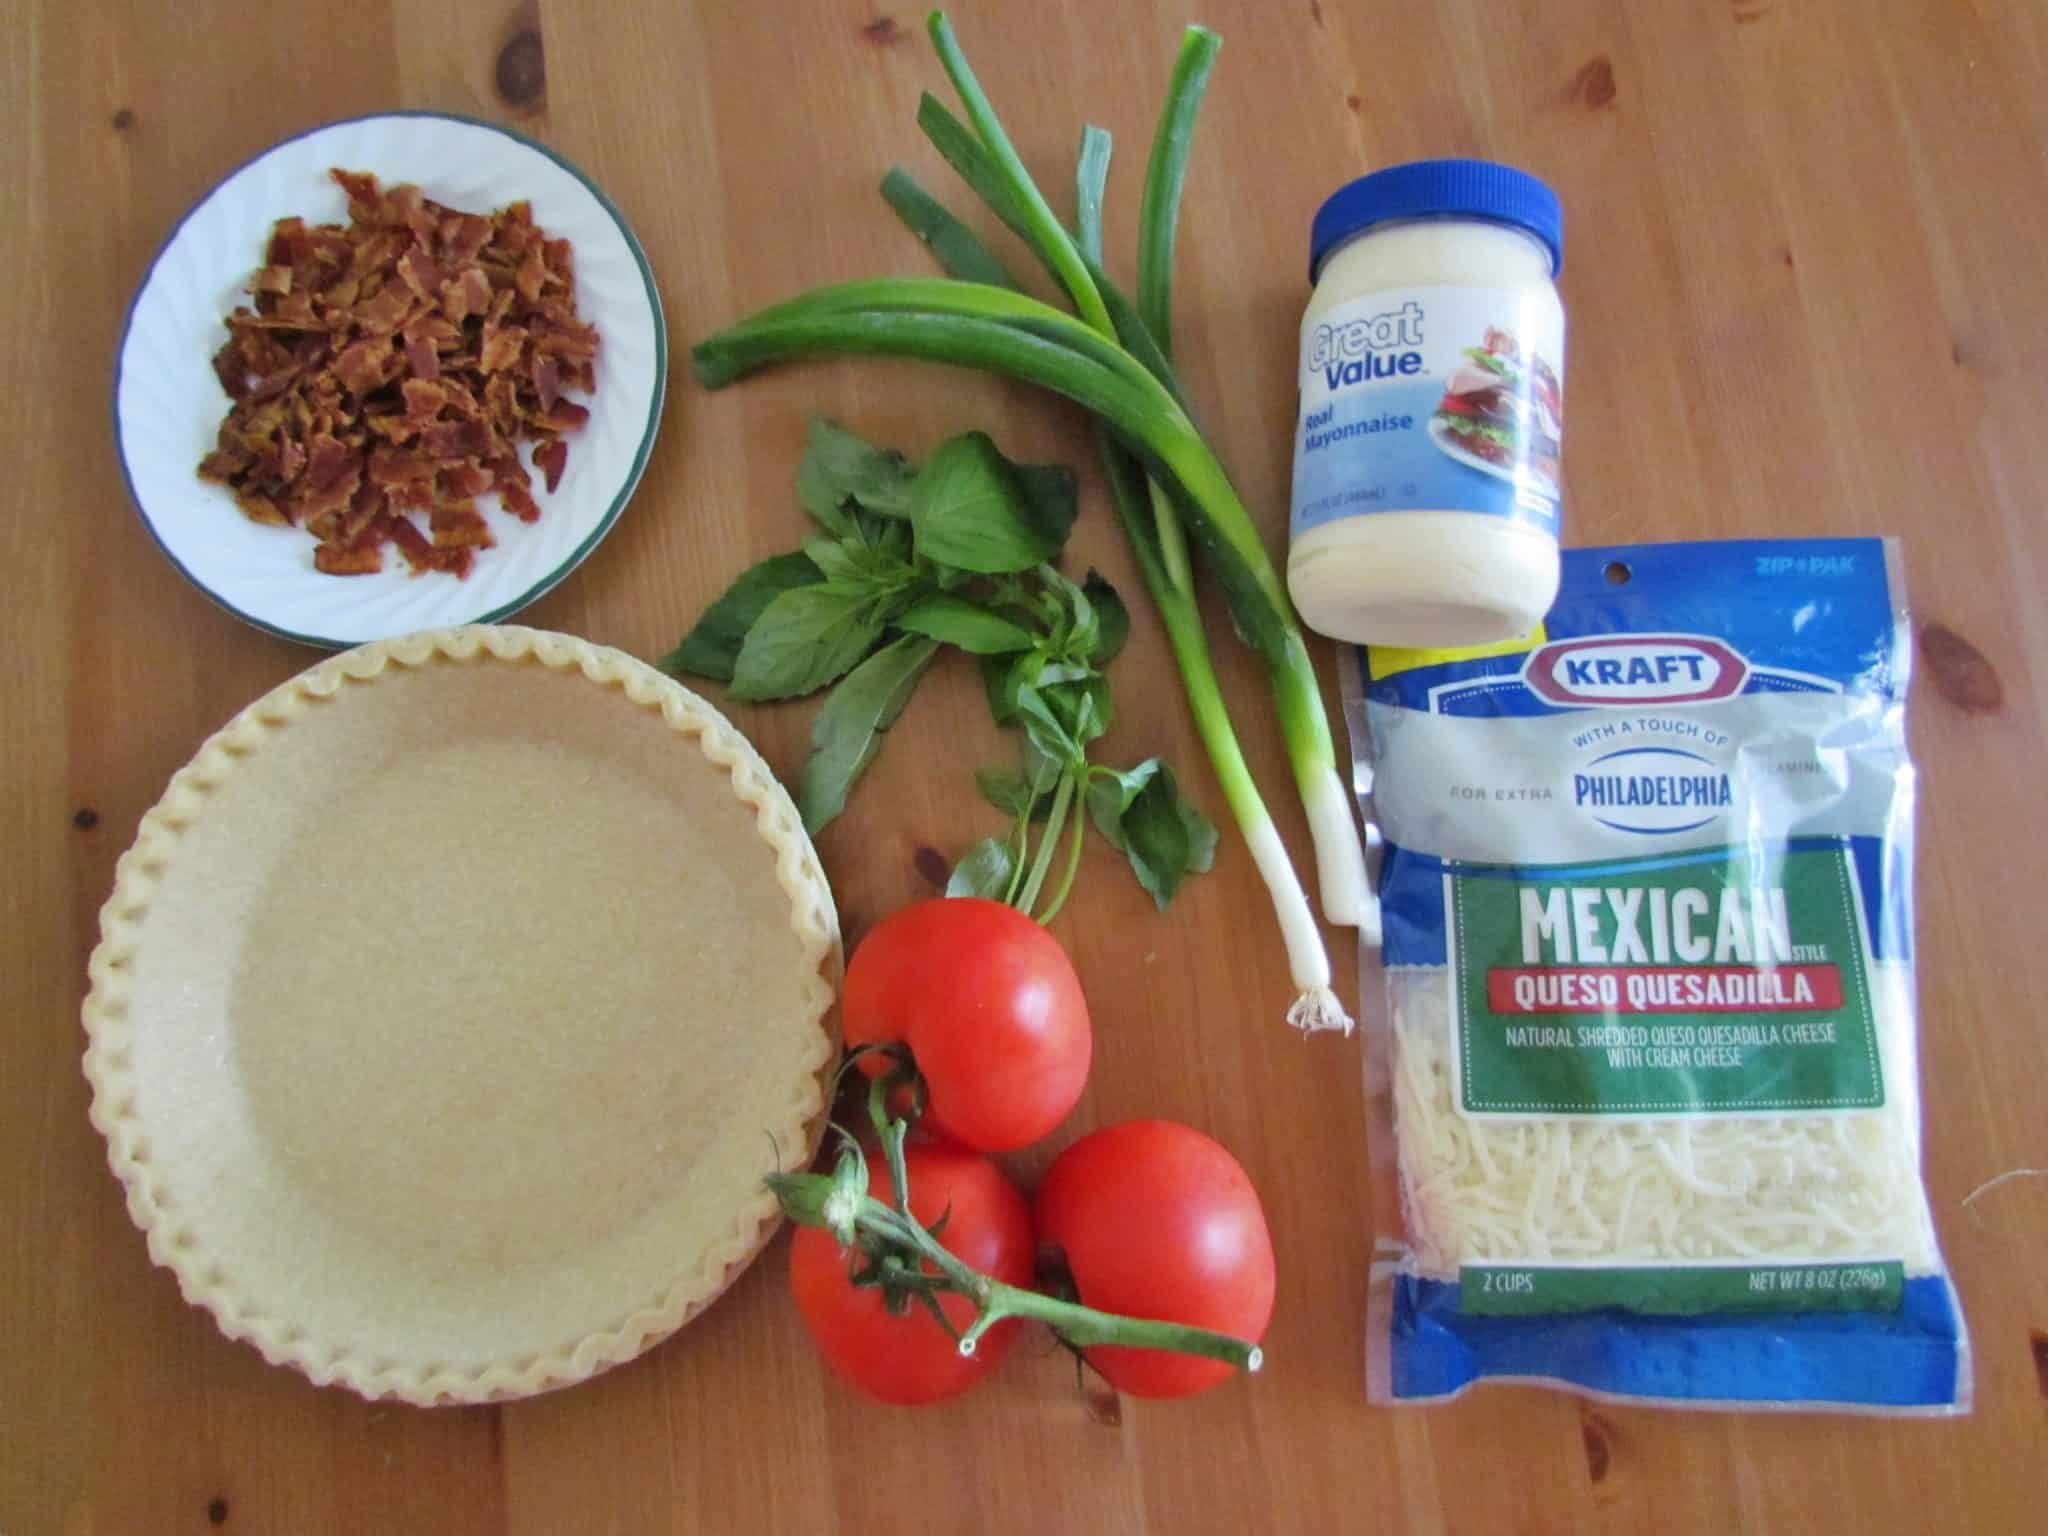 Tomato Pie ingredients: tomatoes, 9-inch frozen pie crust, green onions, basil, chopped bacon, freshly ground black pepper, mayonnaise, shredded mozzarella cheese.